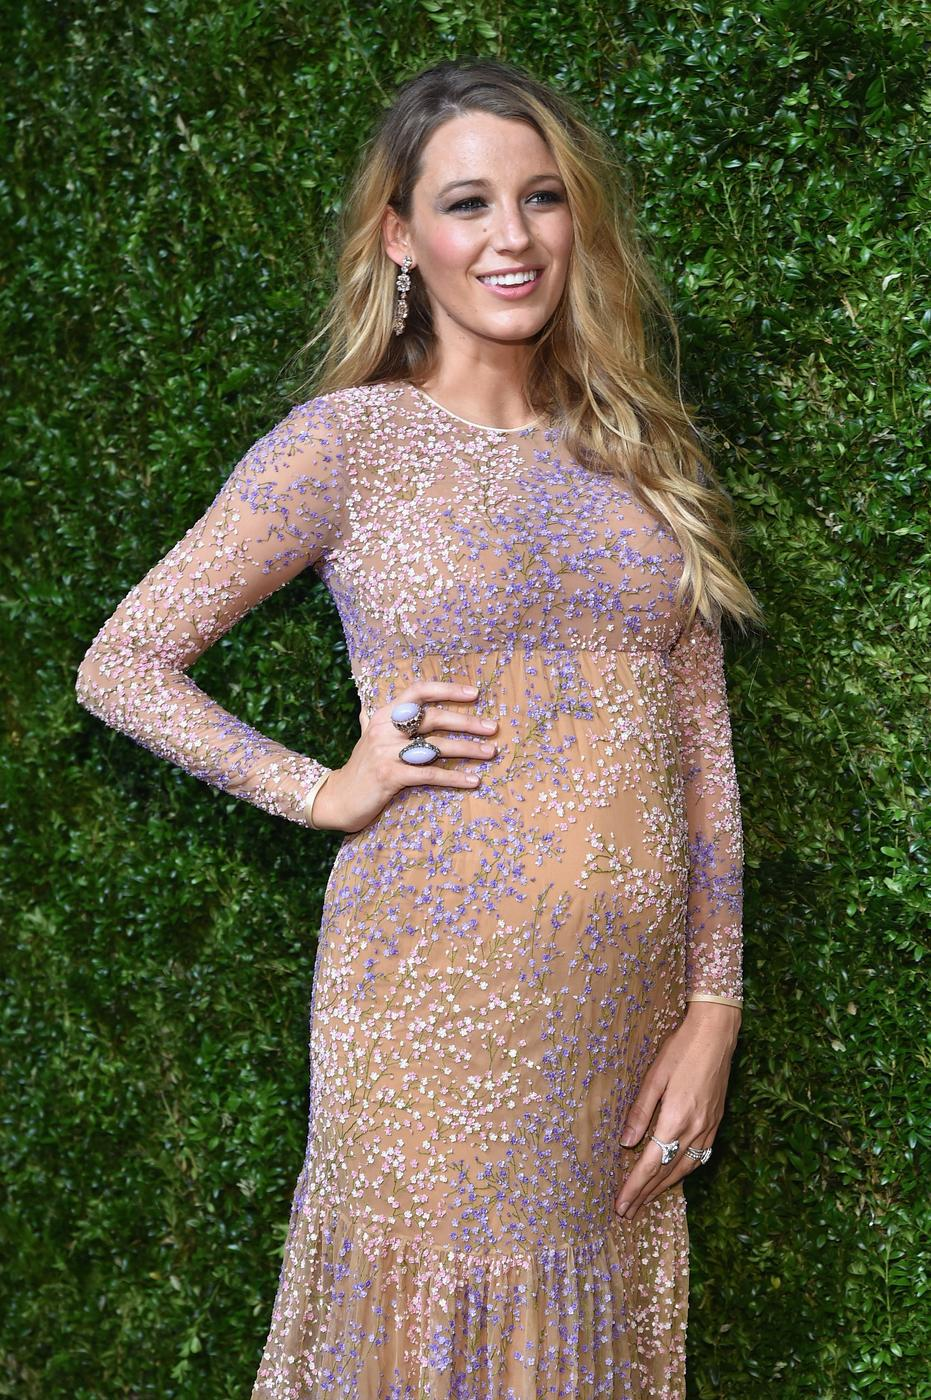 Blake Lively may just be the most glowing pregnant person ever (of course)